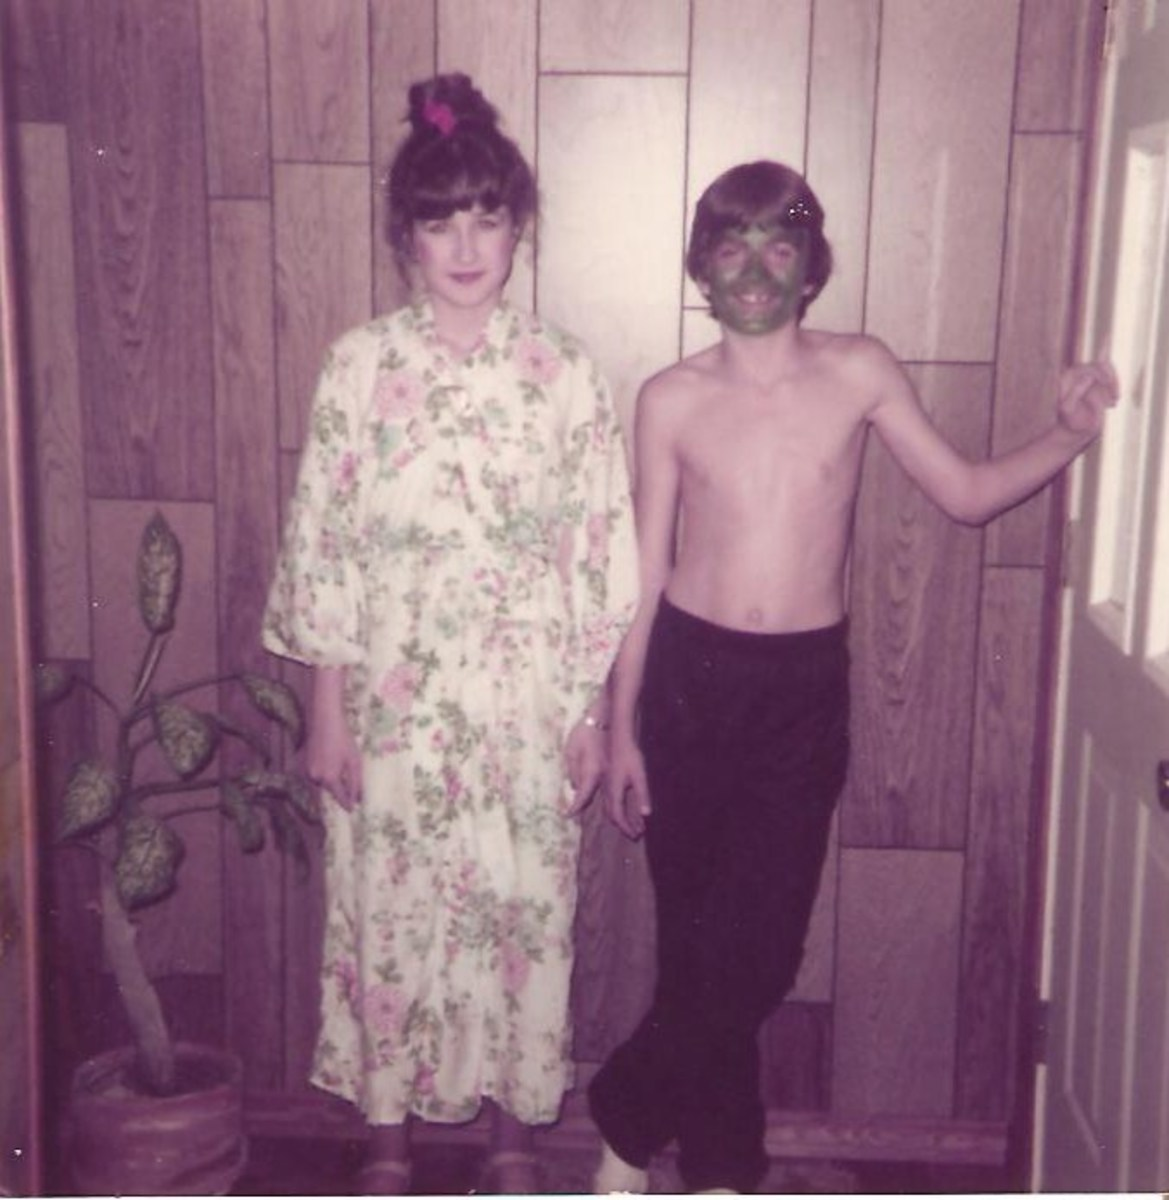 Me as a Geisha girl and my brother as the Incredible Hulk. Think he could use some more green on his chest and arms?